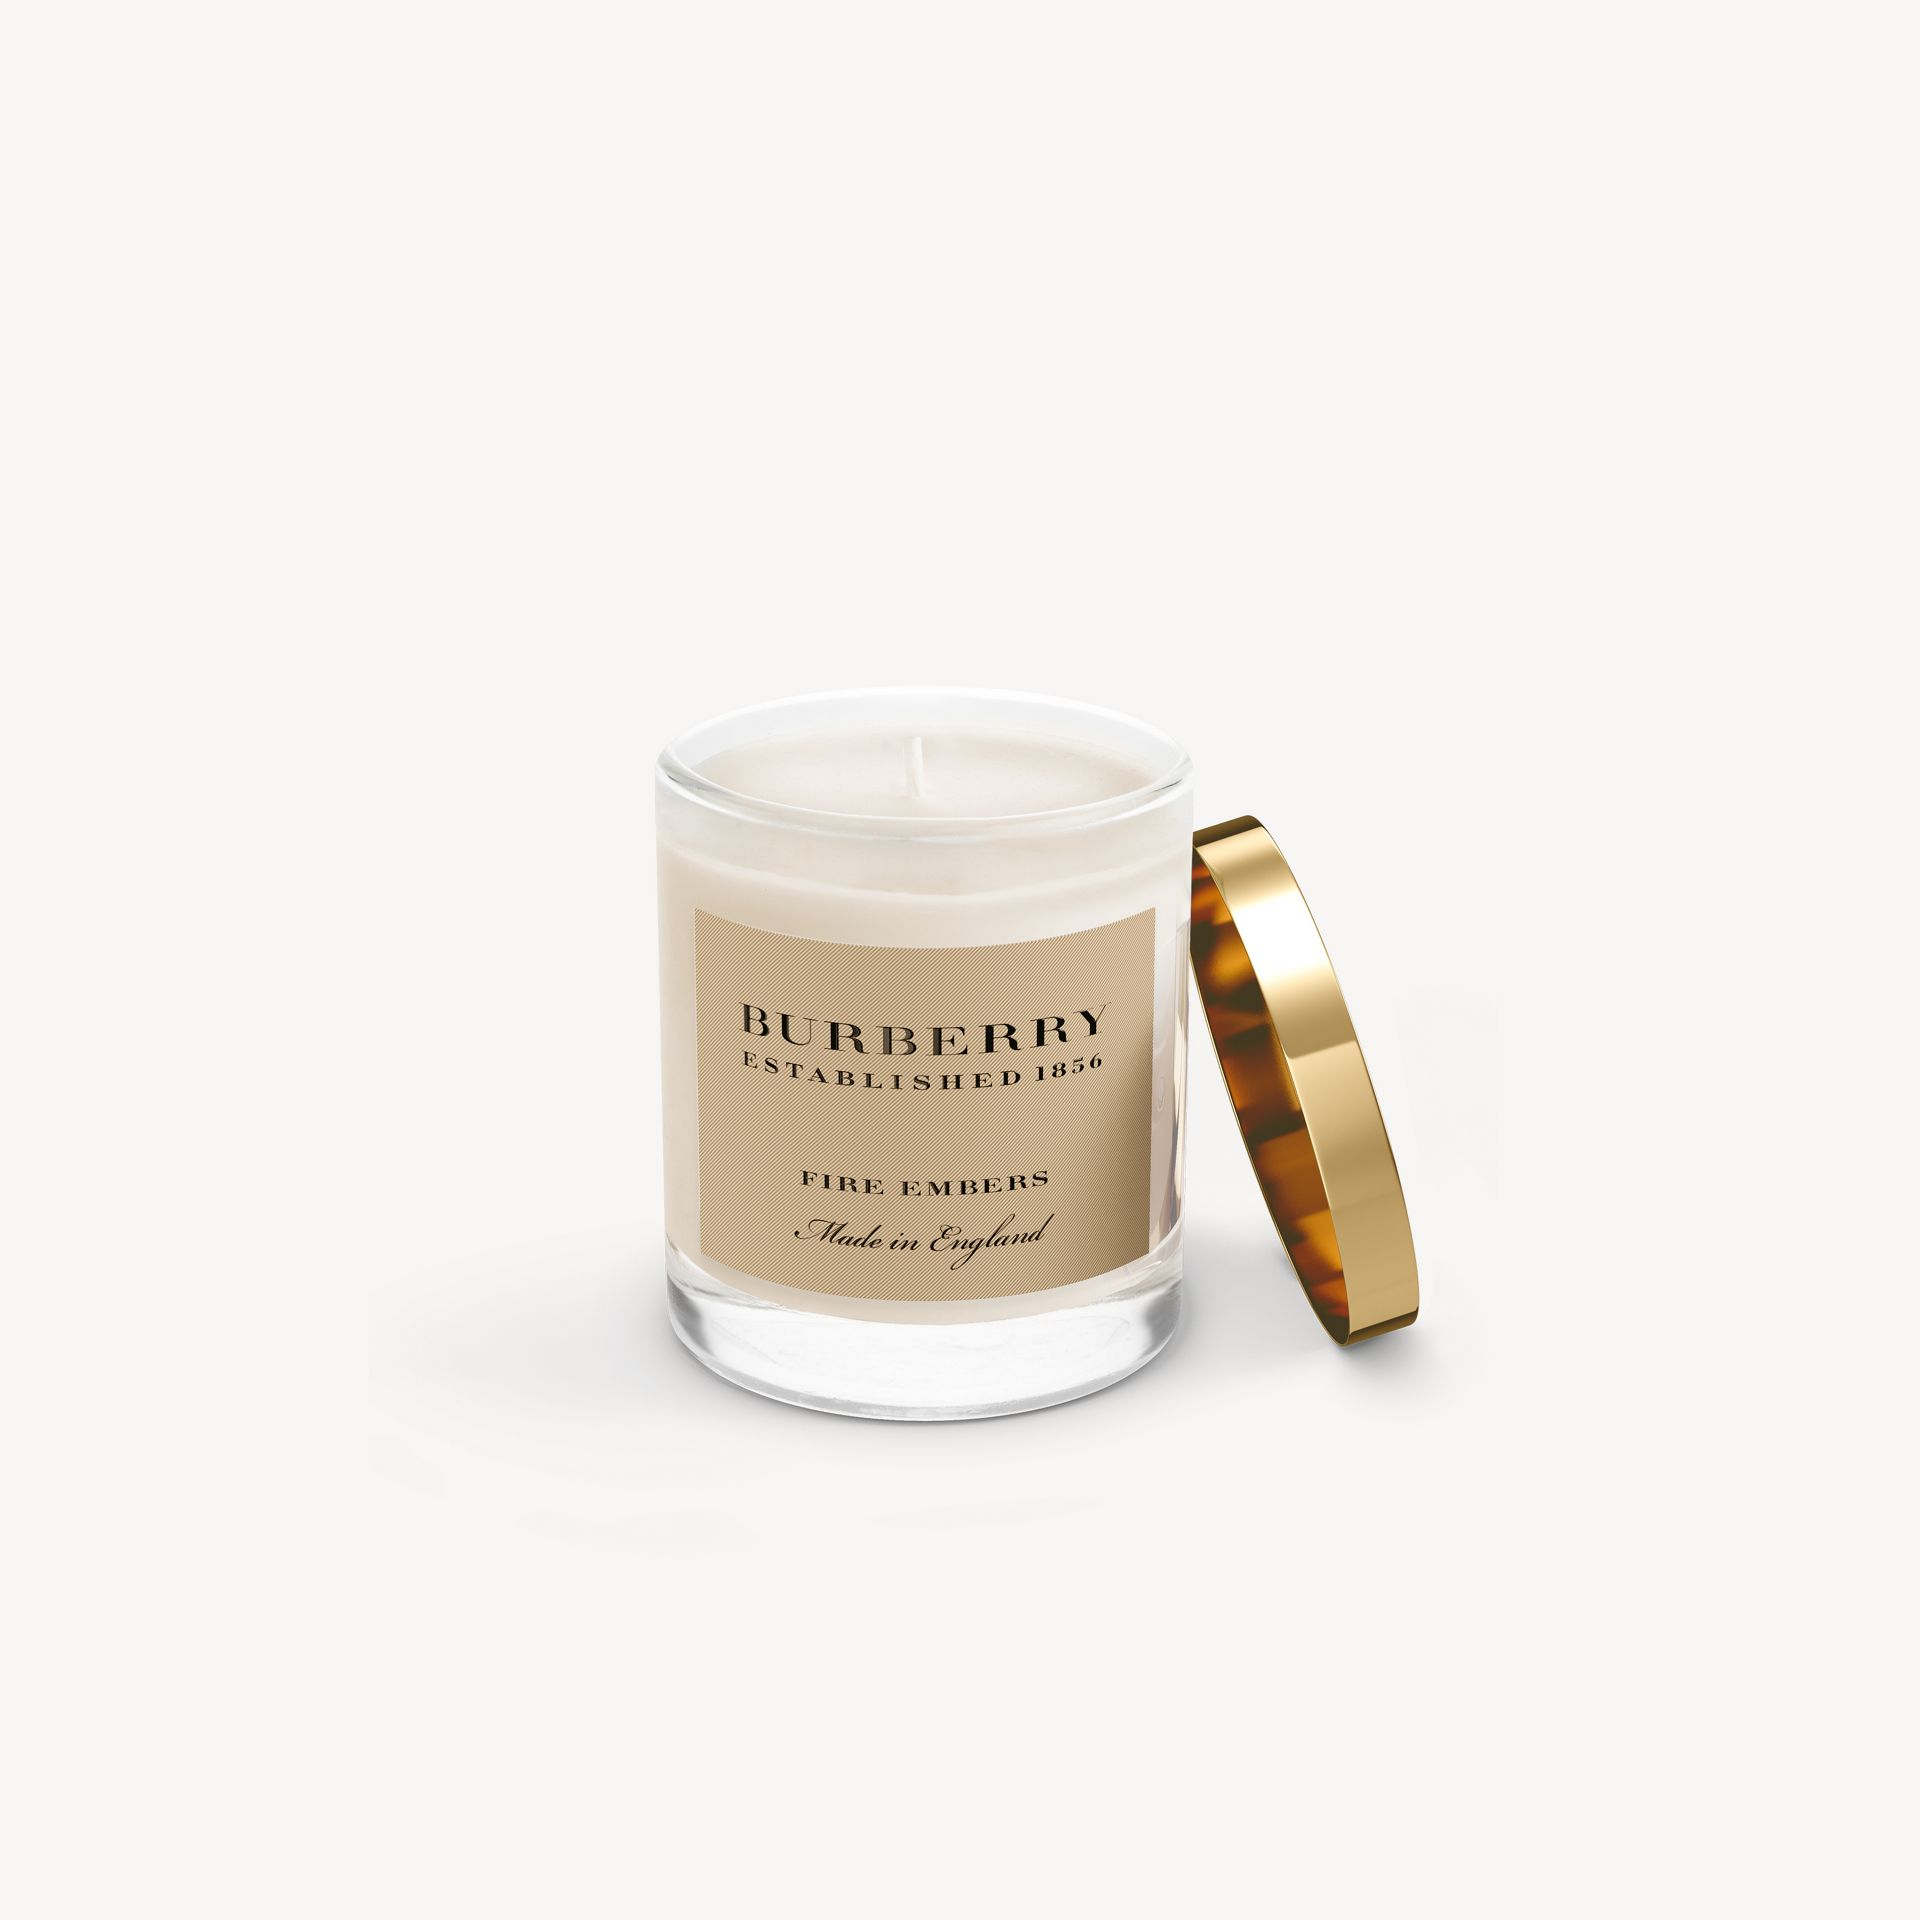 Fire Embers Fragranced Candle - 200g - gallery image 1